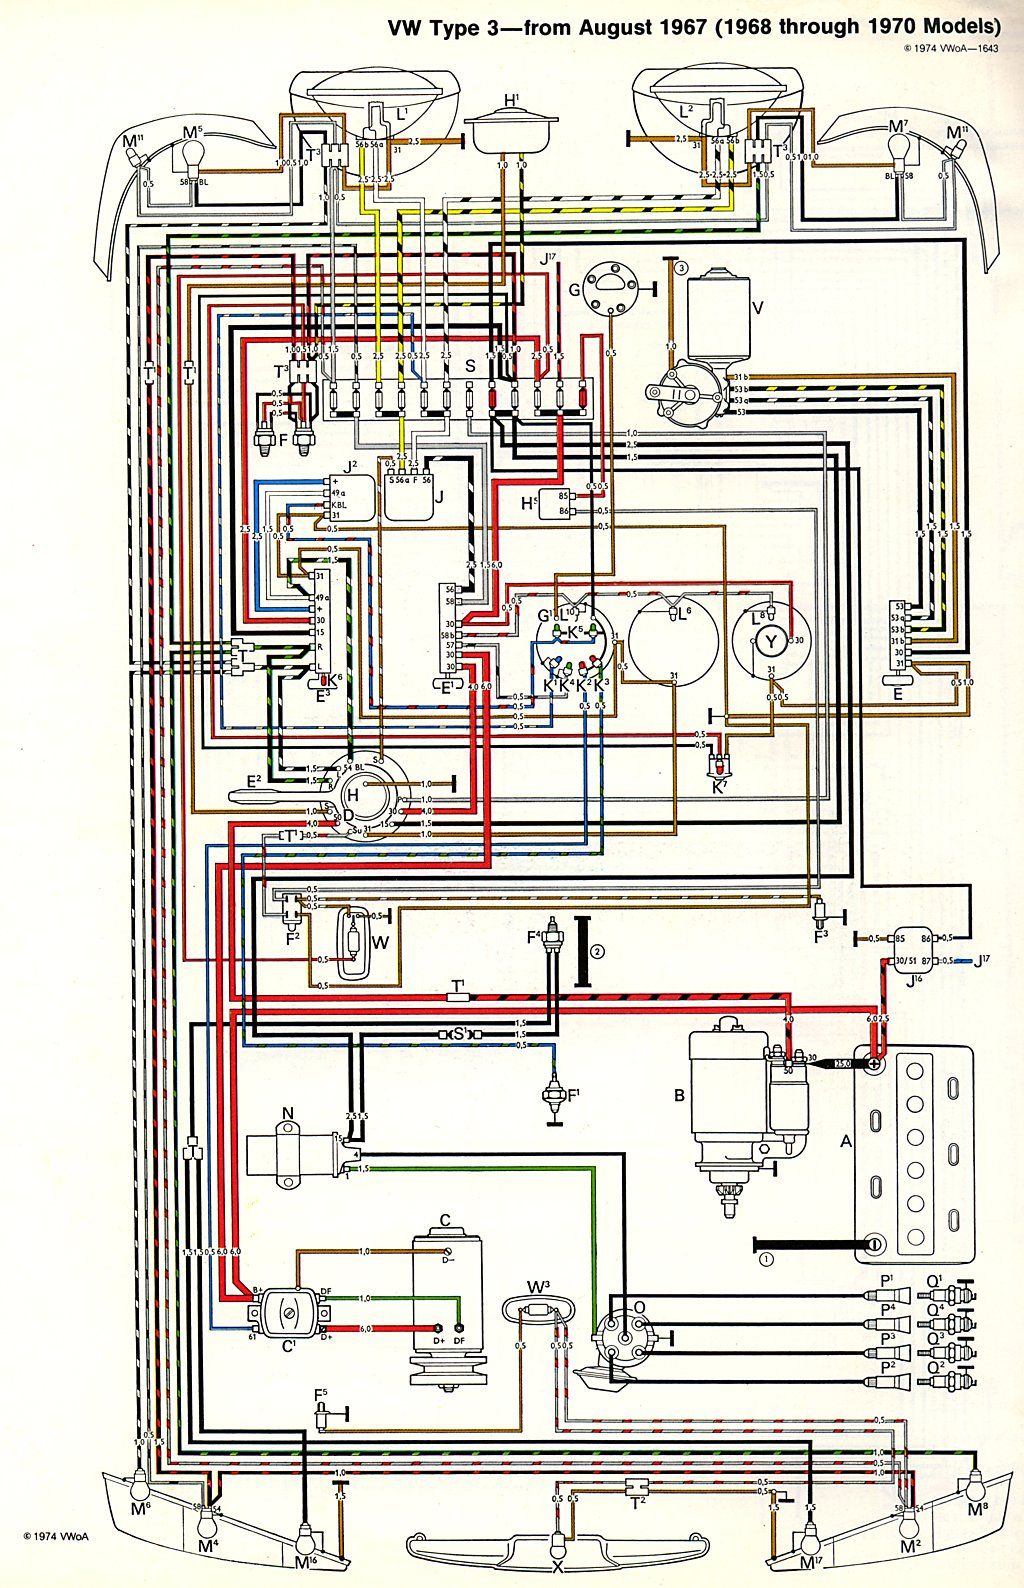 Type 3 Wiring Diagram Schema Diagrams 2000 Vw Bettle Thesamba Com 1973 Bus Vacuum